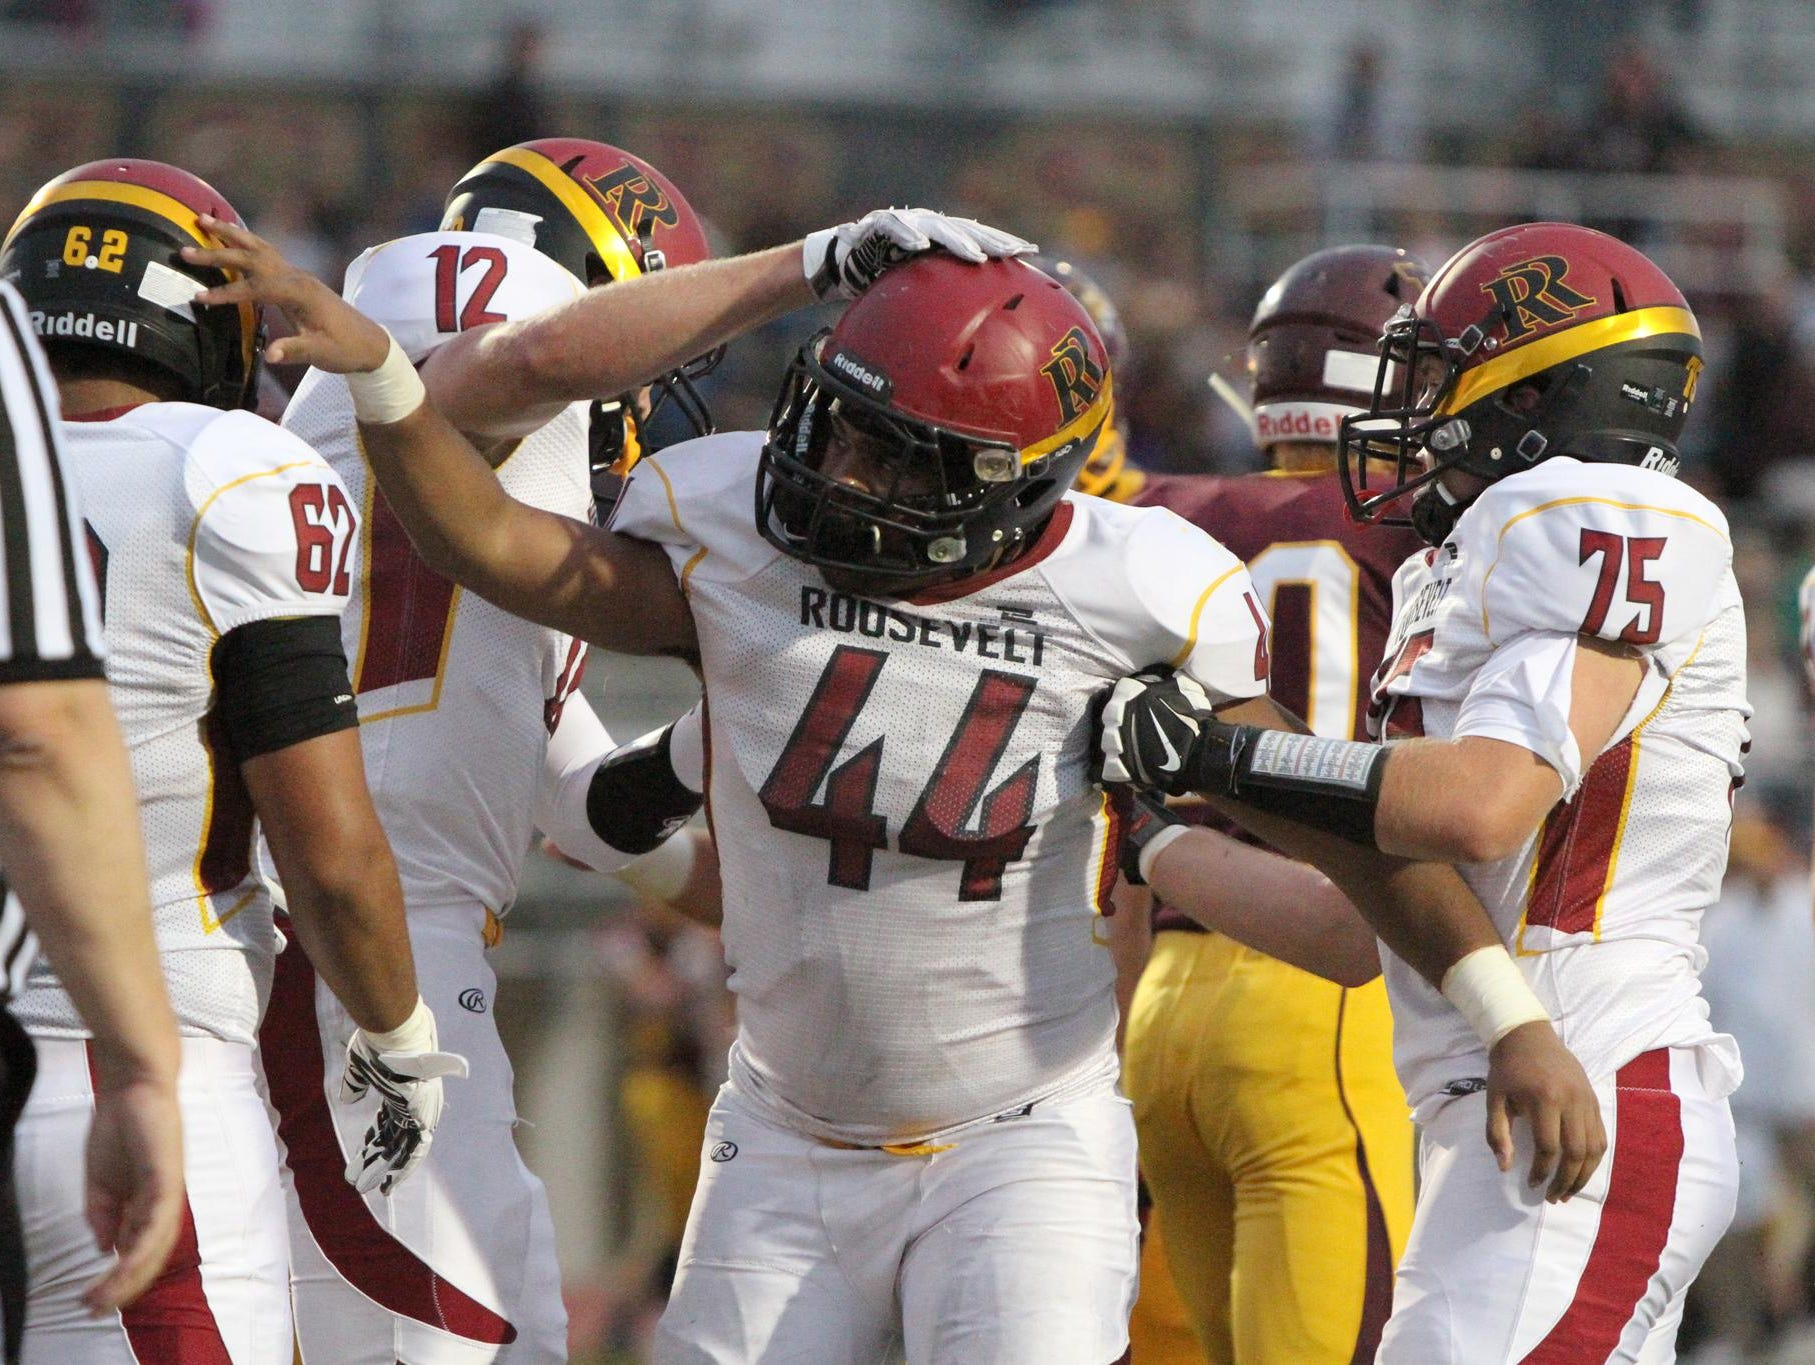 Piercen Evans celebrates with his teammates after scoring Roosevelt's second touchdown of the first quarter on a one-yard run.